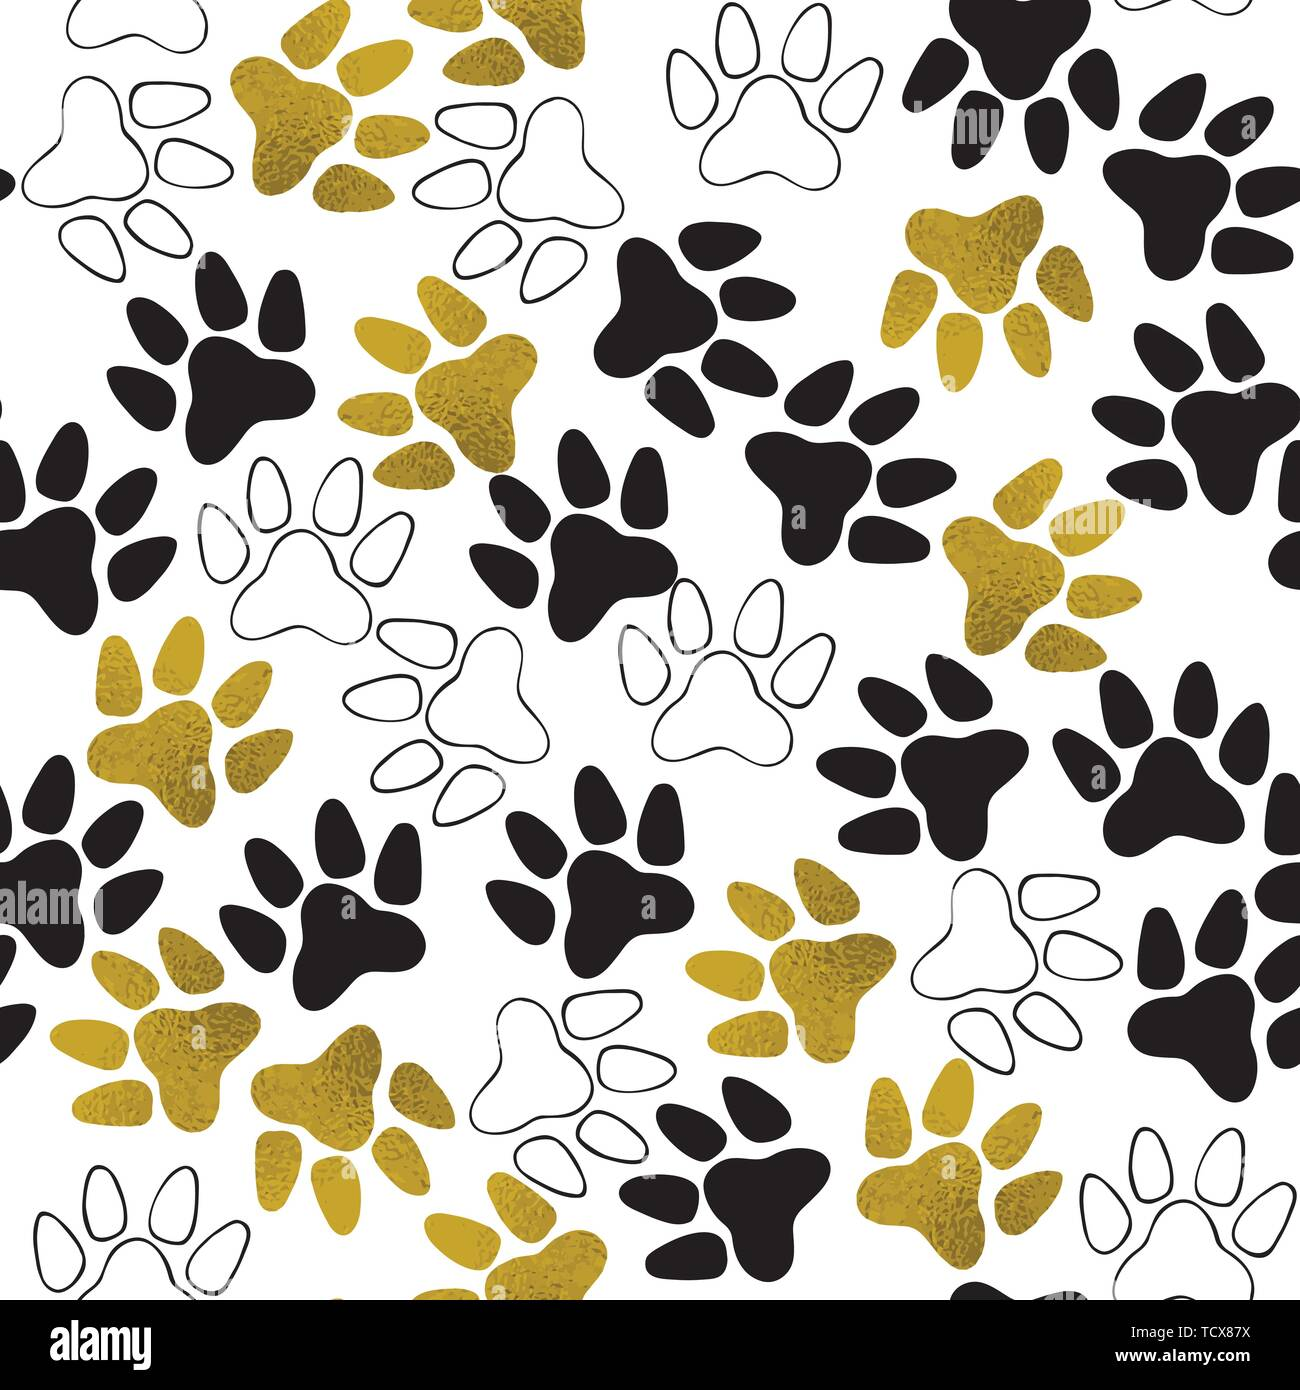 Seamless pattern with dog paw print  Vector illustration